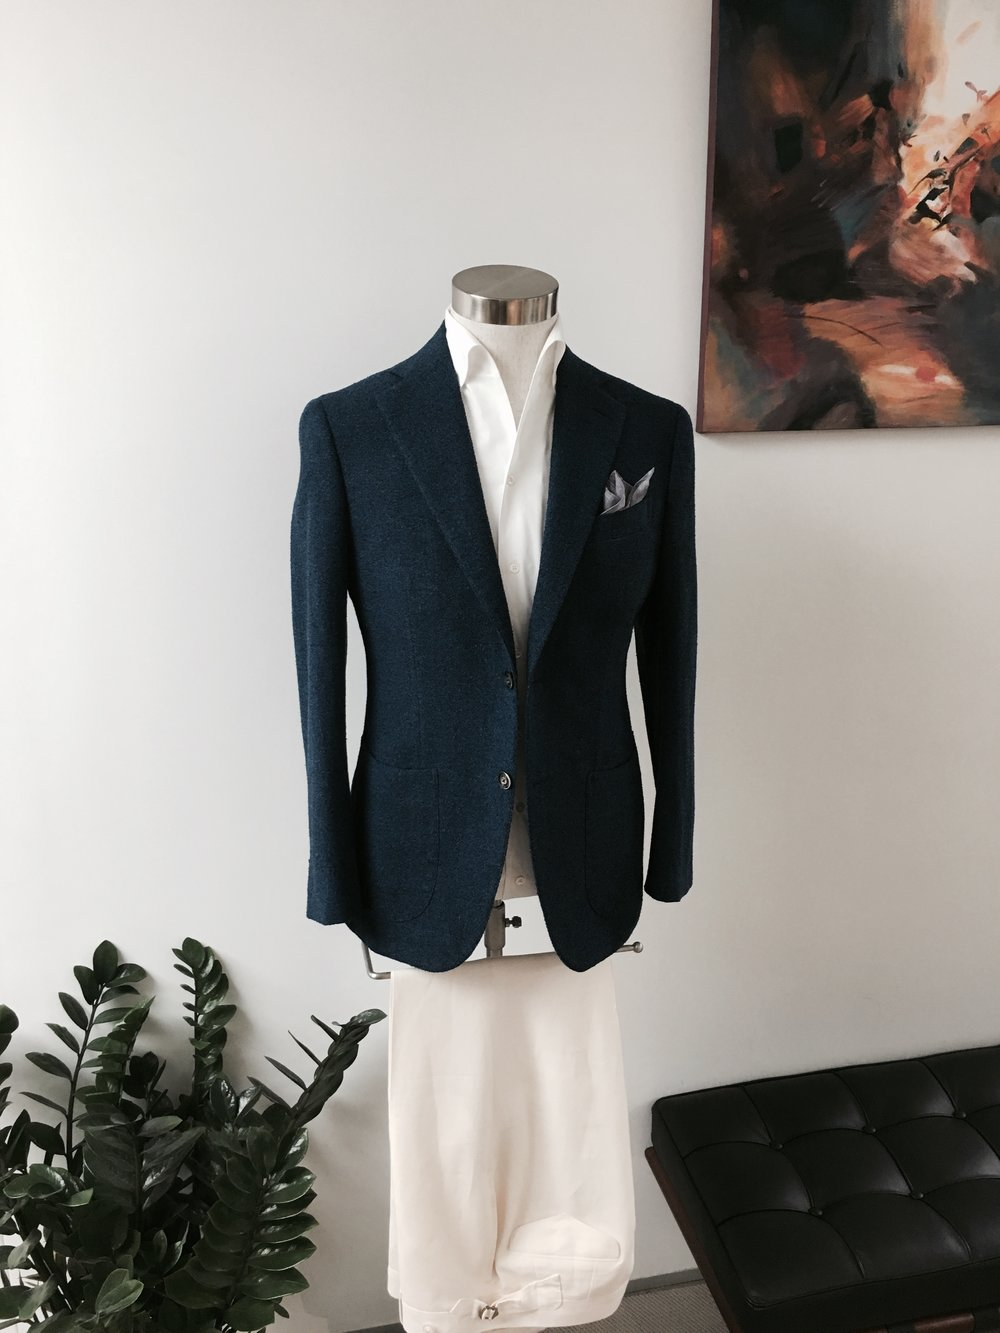 Bespoke Leisure Wear Companion in Vintage Cotton Linen. HK$13,800.